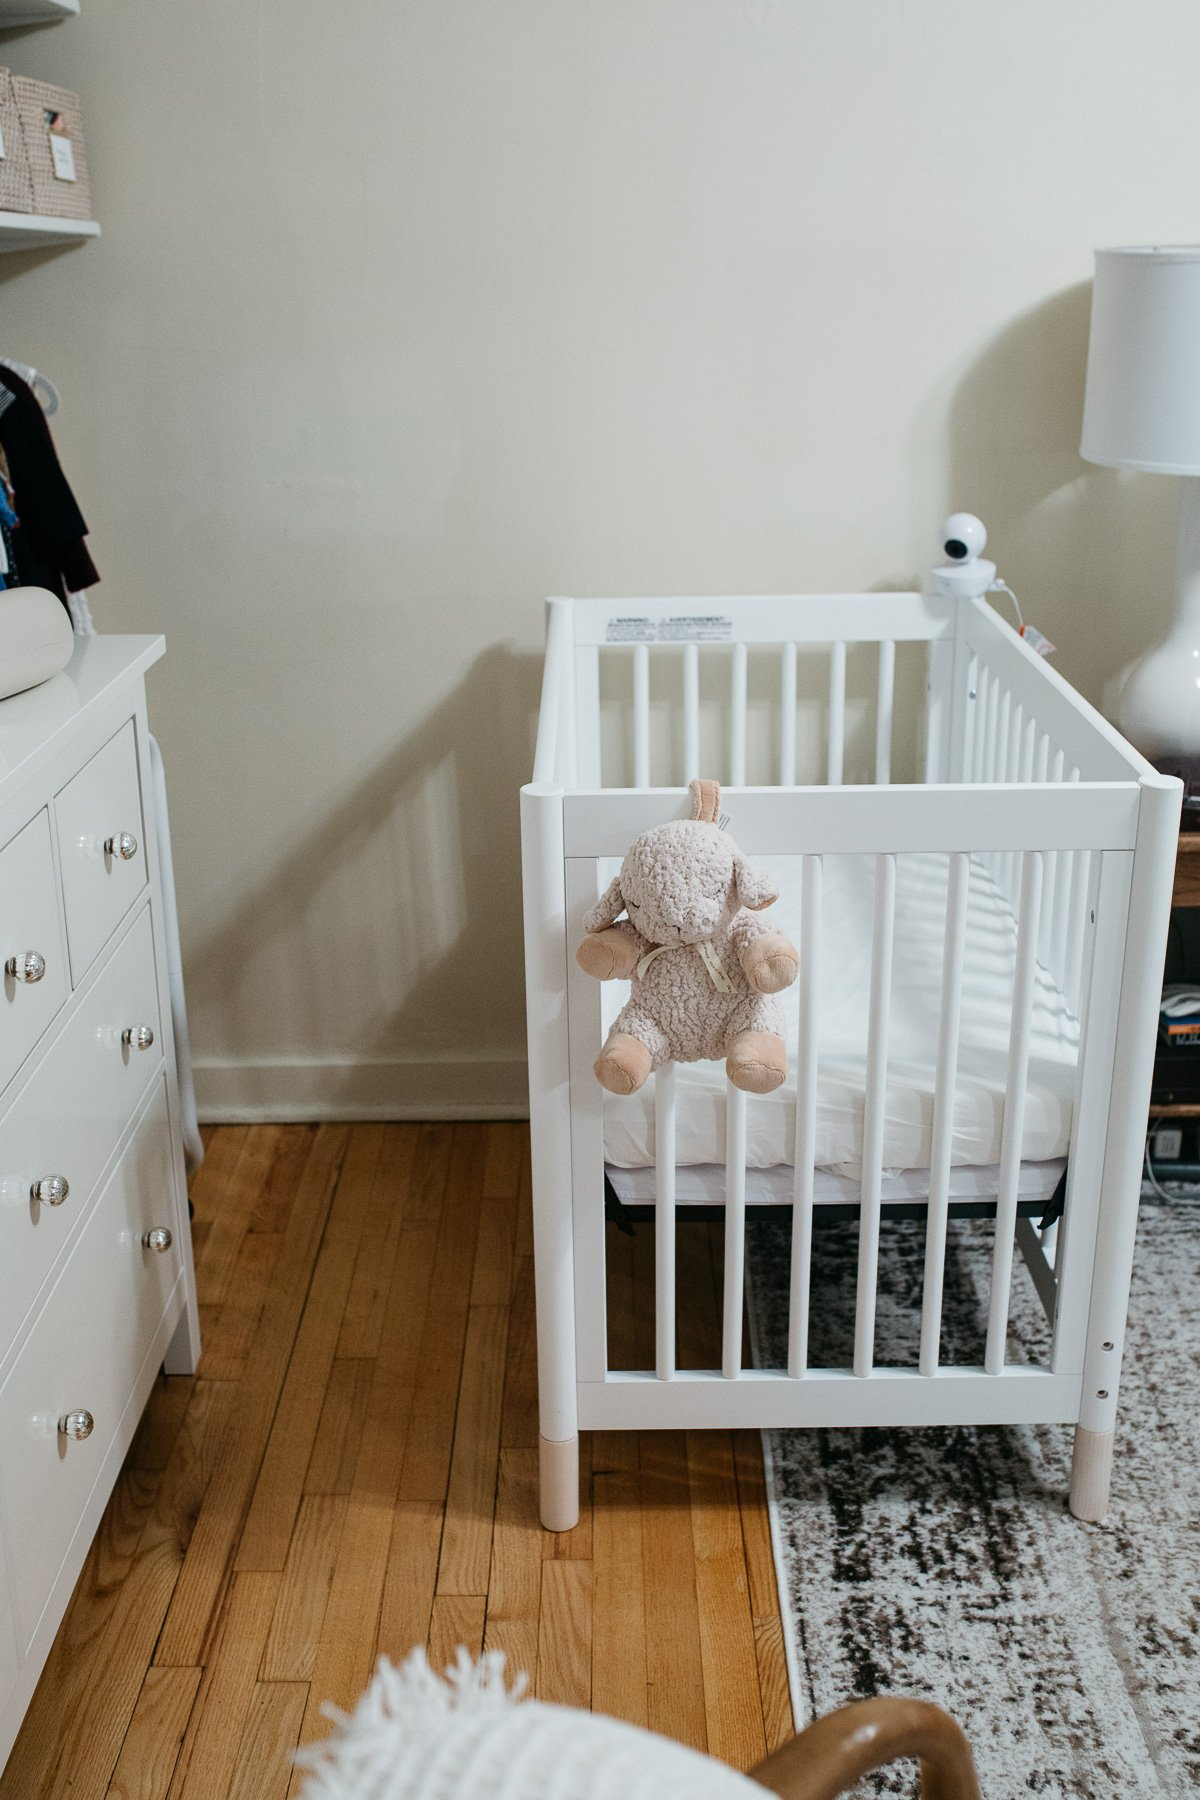 Top US lifestyle blogger, Wellesley & King, styles a tiny nursery in an apartment: small nursery ideas, small nursery organization, tiny nursery decor, tiny nursery ideas, tiny nursery organization, mini crib, convertible mini crib